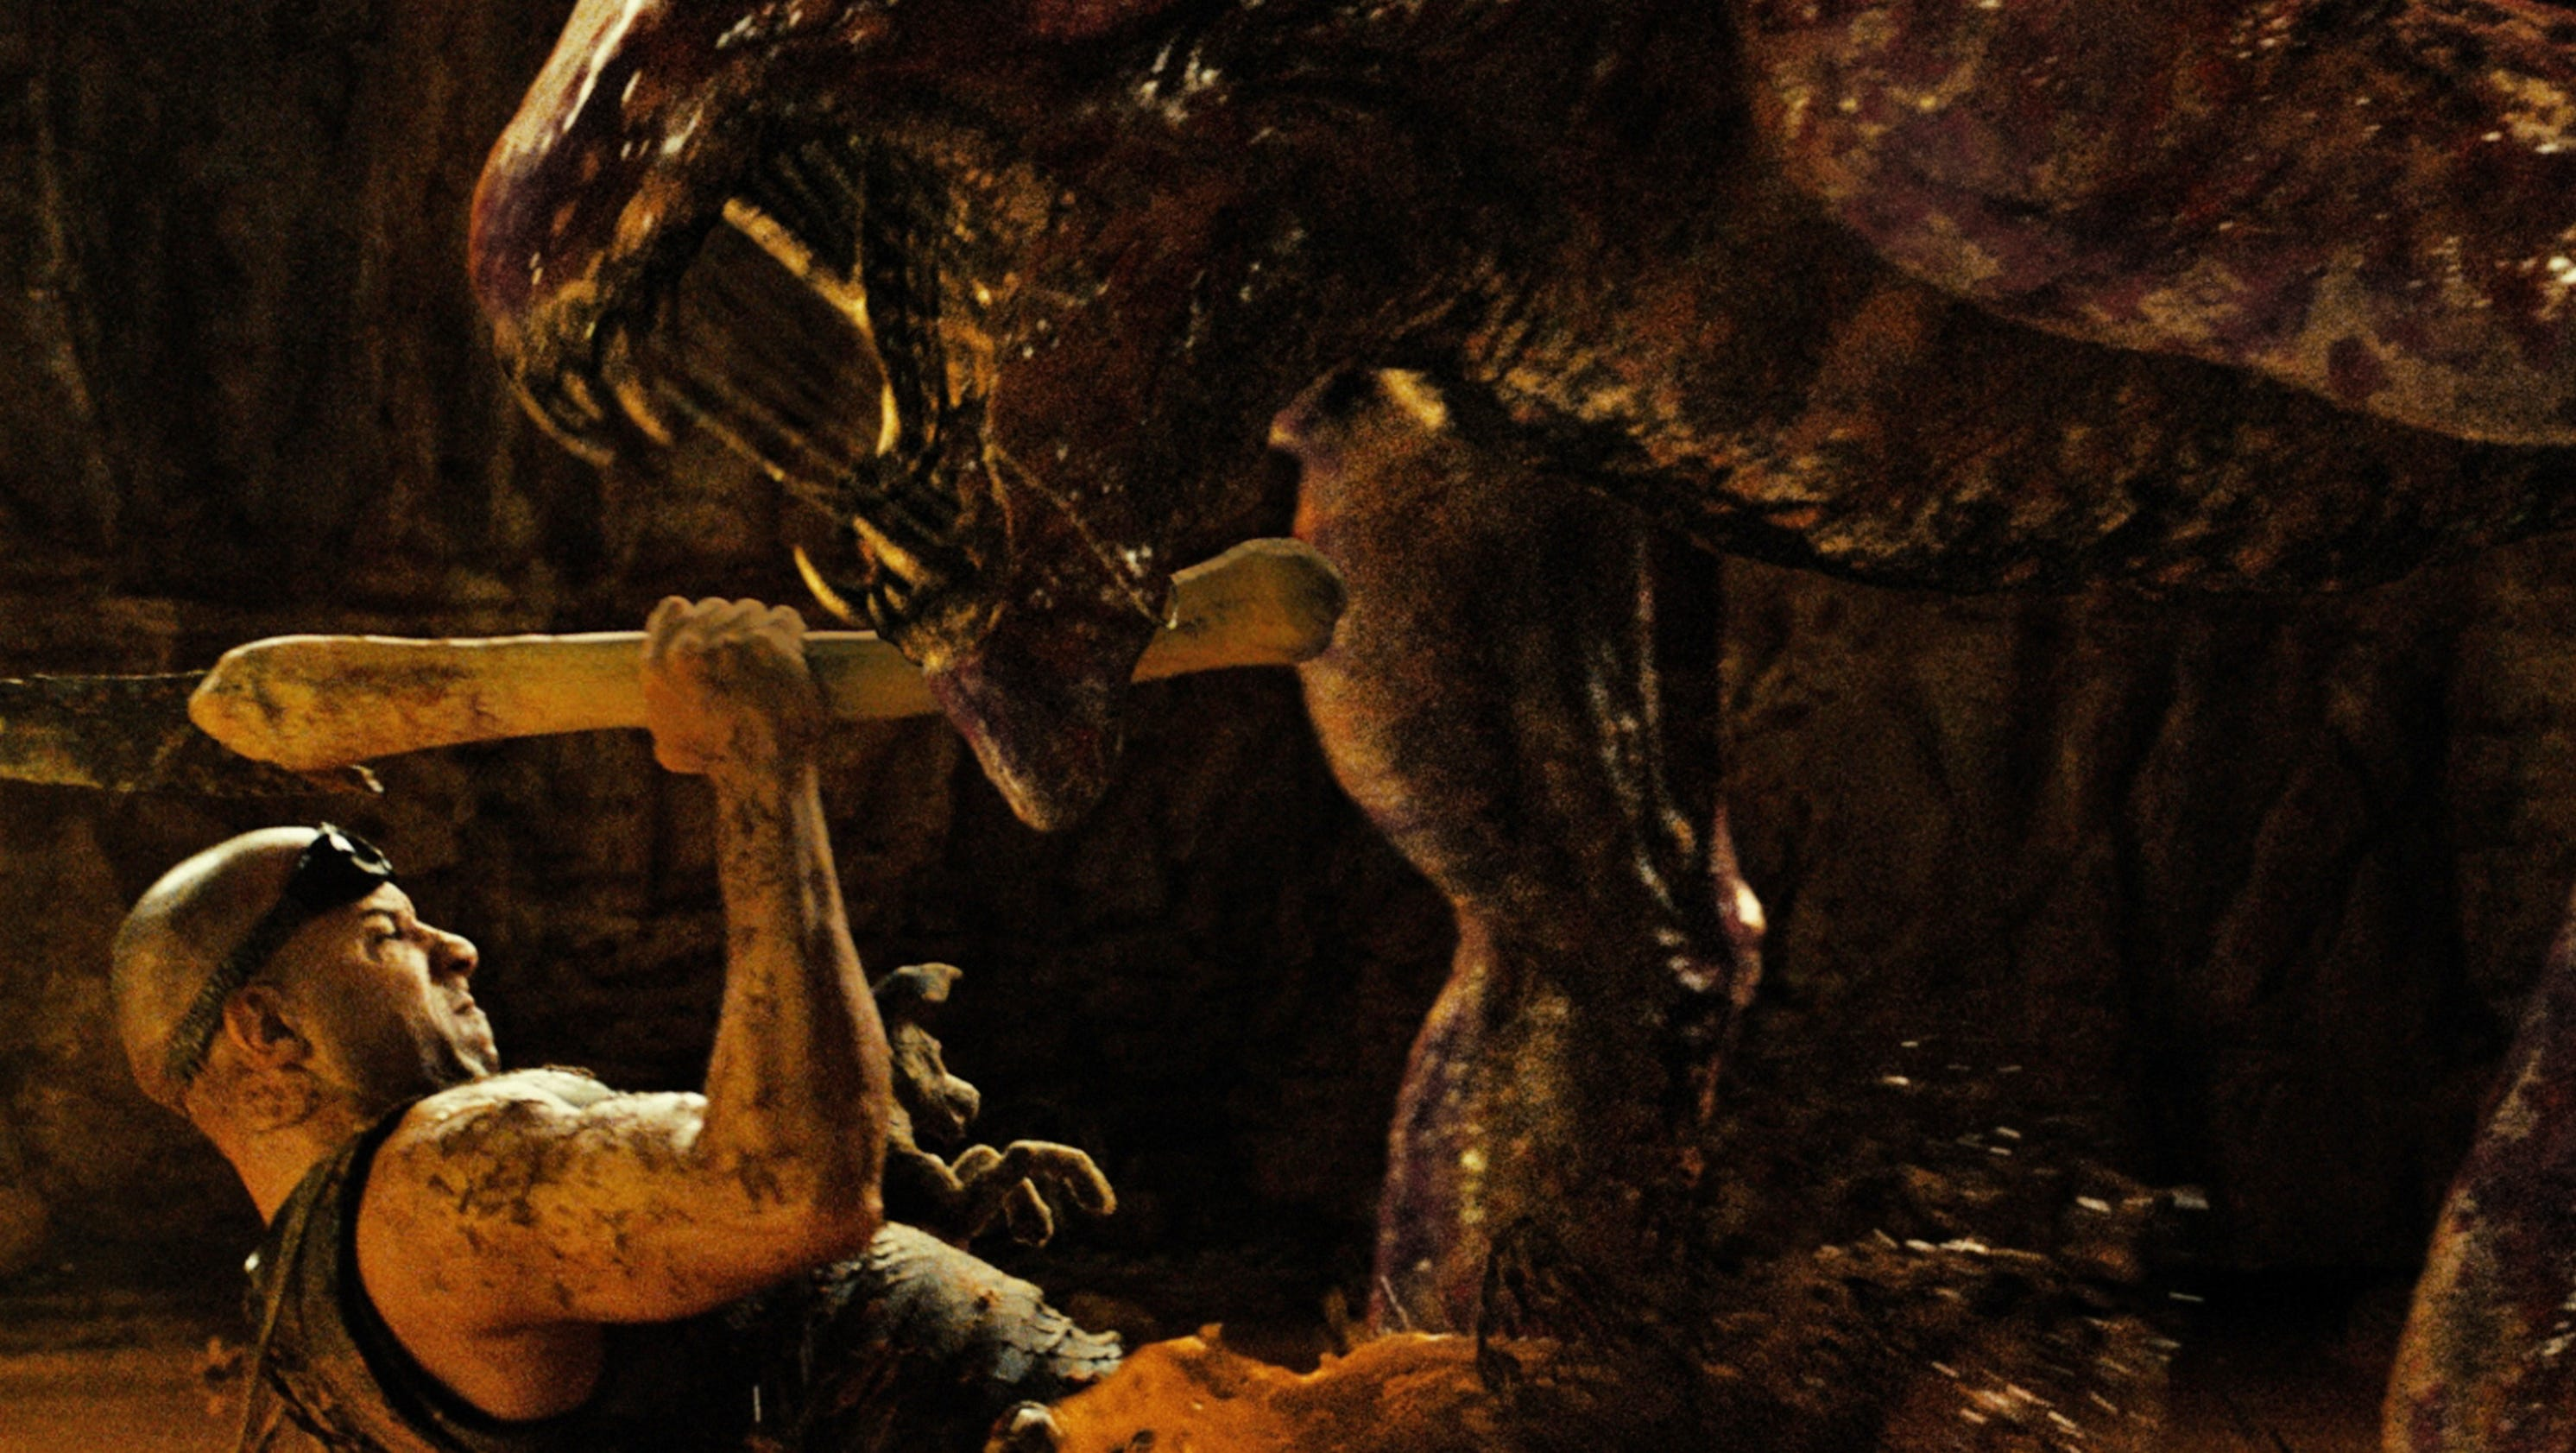 myth versus reality in the movie monster Werewolf vs vampire  there is a difference between fiction and myth  time there is plenty of evidence to suggest that many myths have their origin in reality.